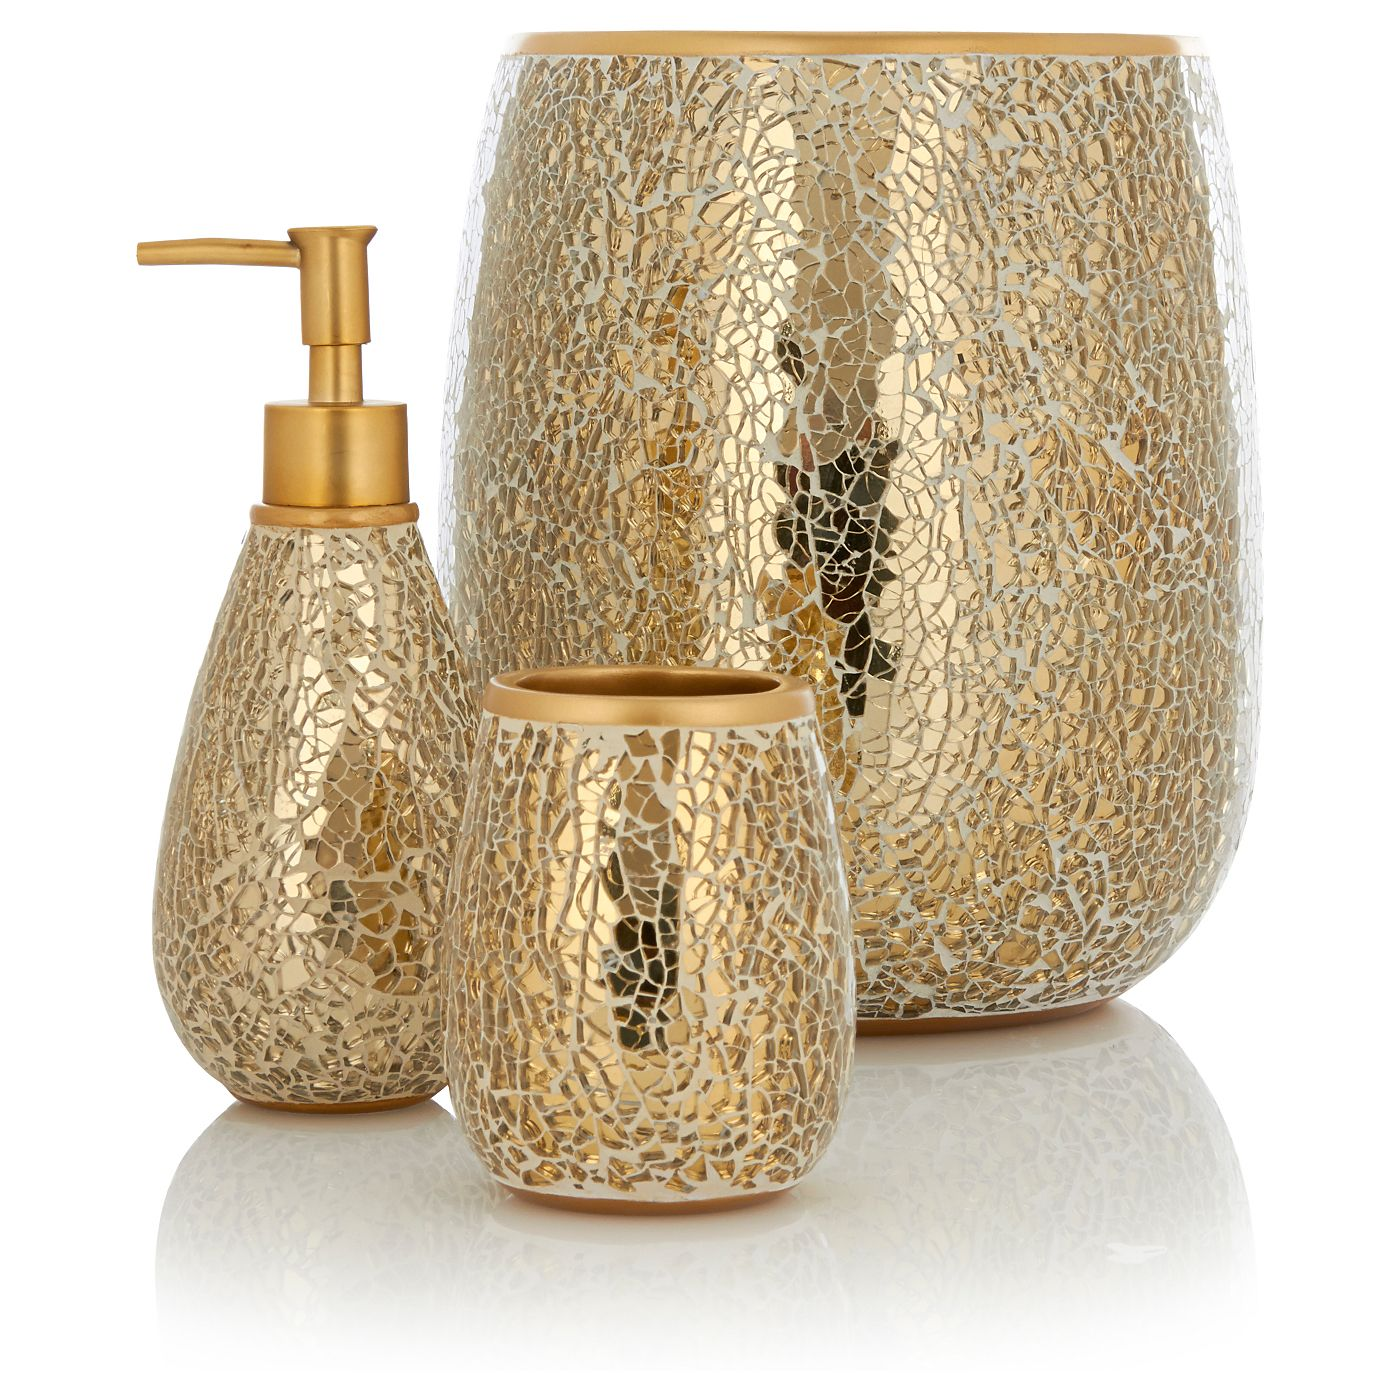 George Home Accessories Gold Sparkle Bathroom Accessories